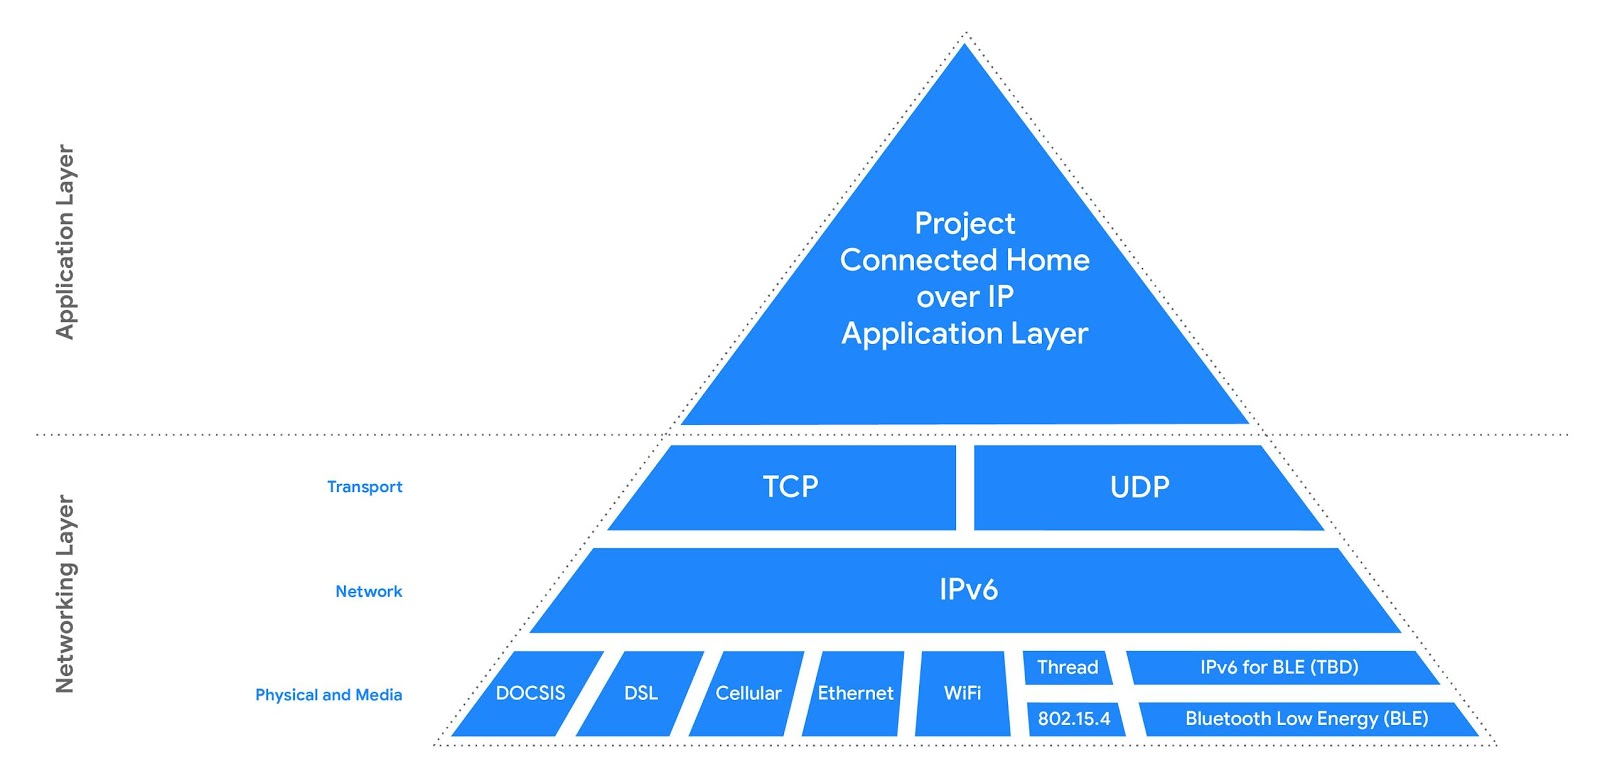 Diagram piramida yang menunjukkan layer Aplikasi Project Connected Home over IP